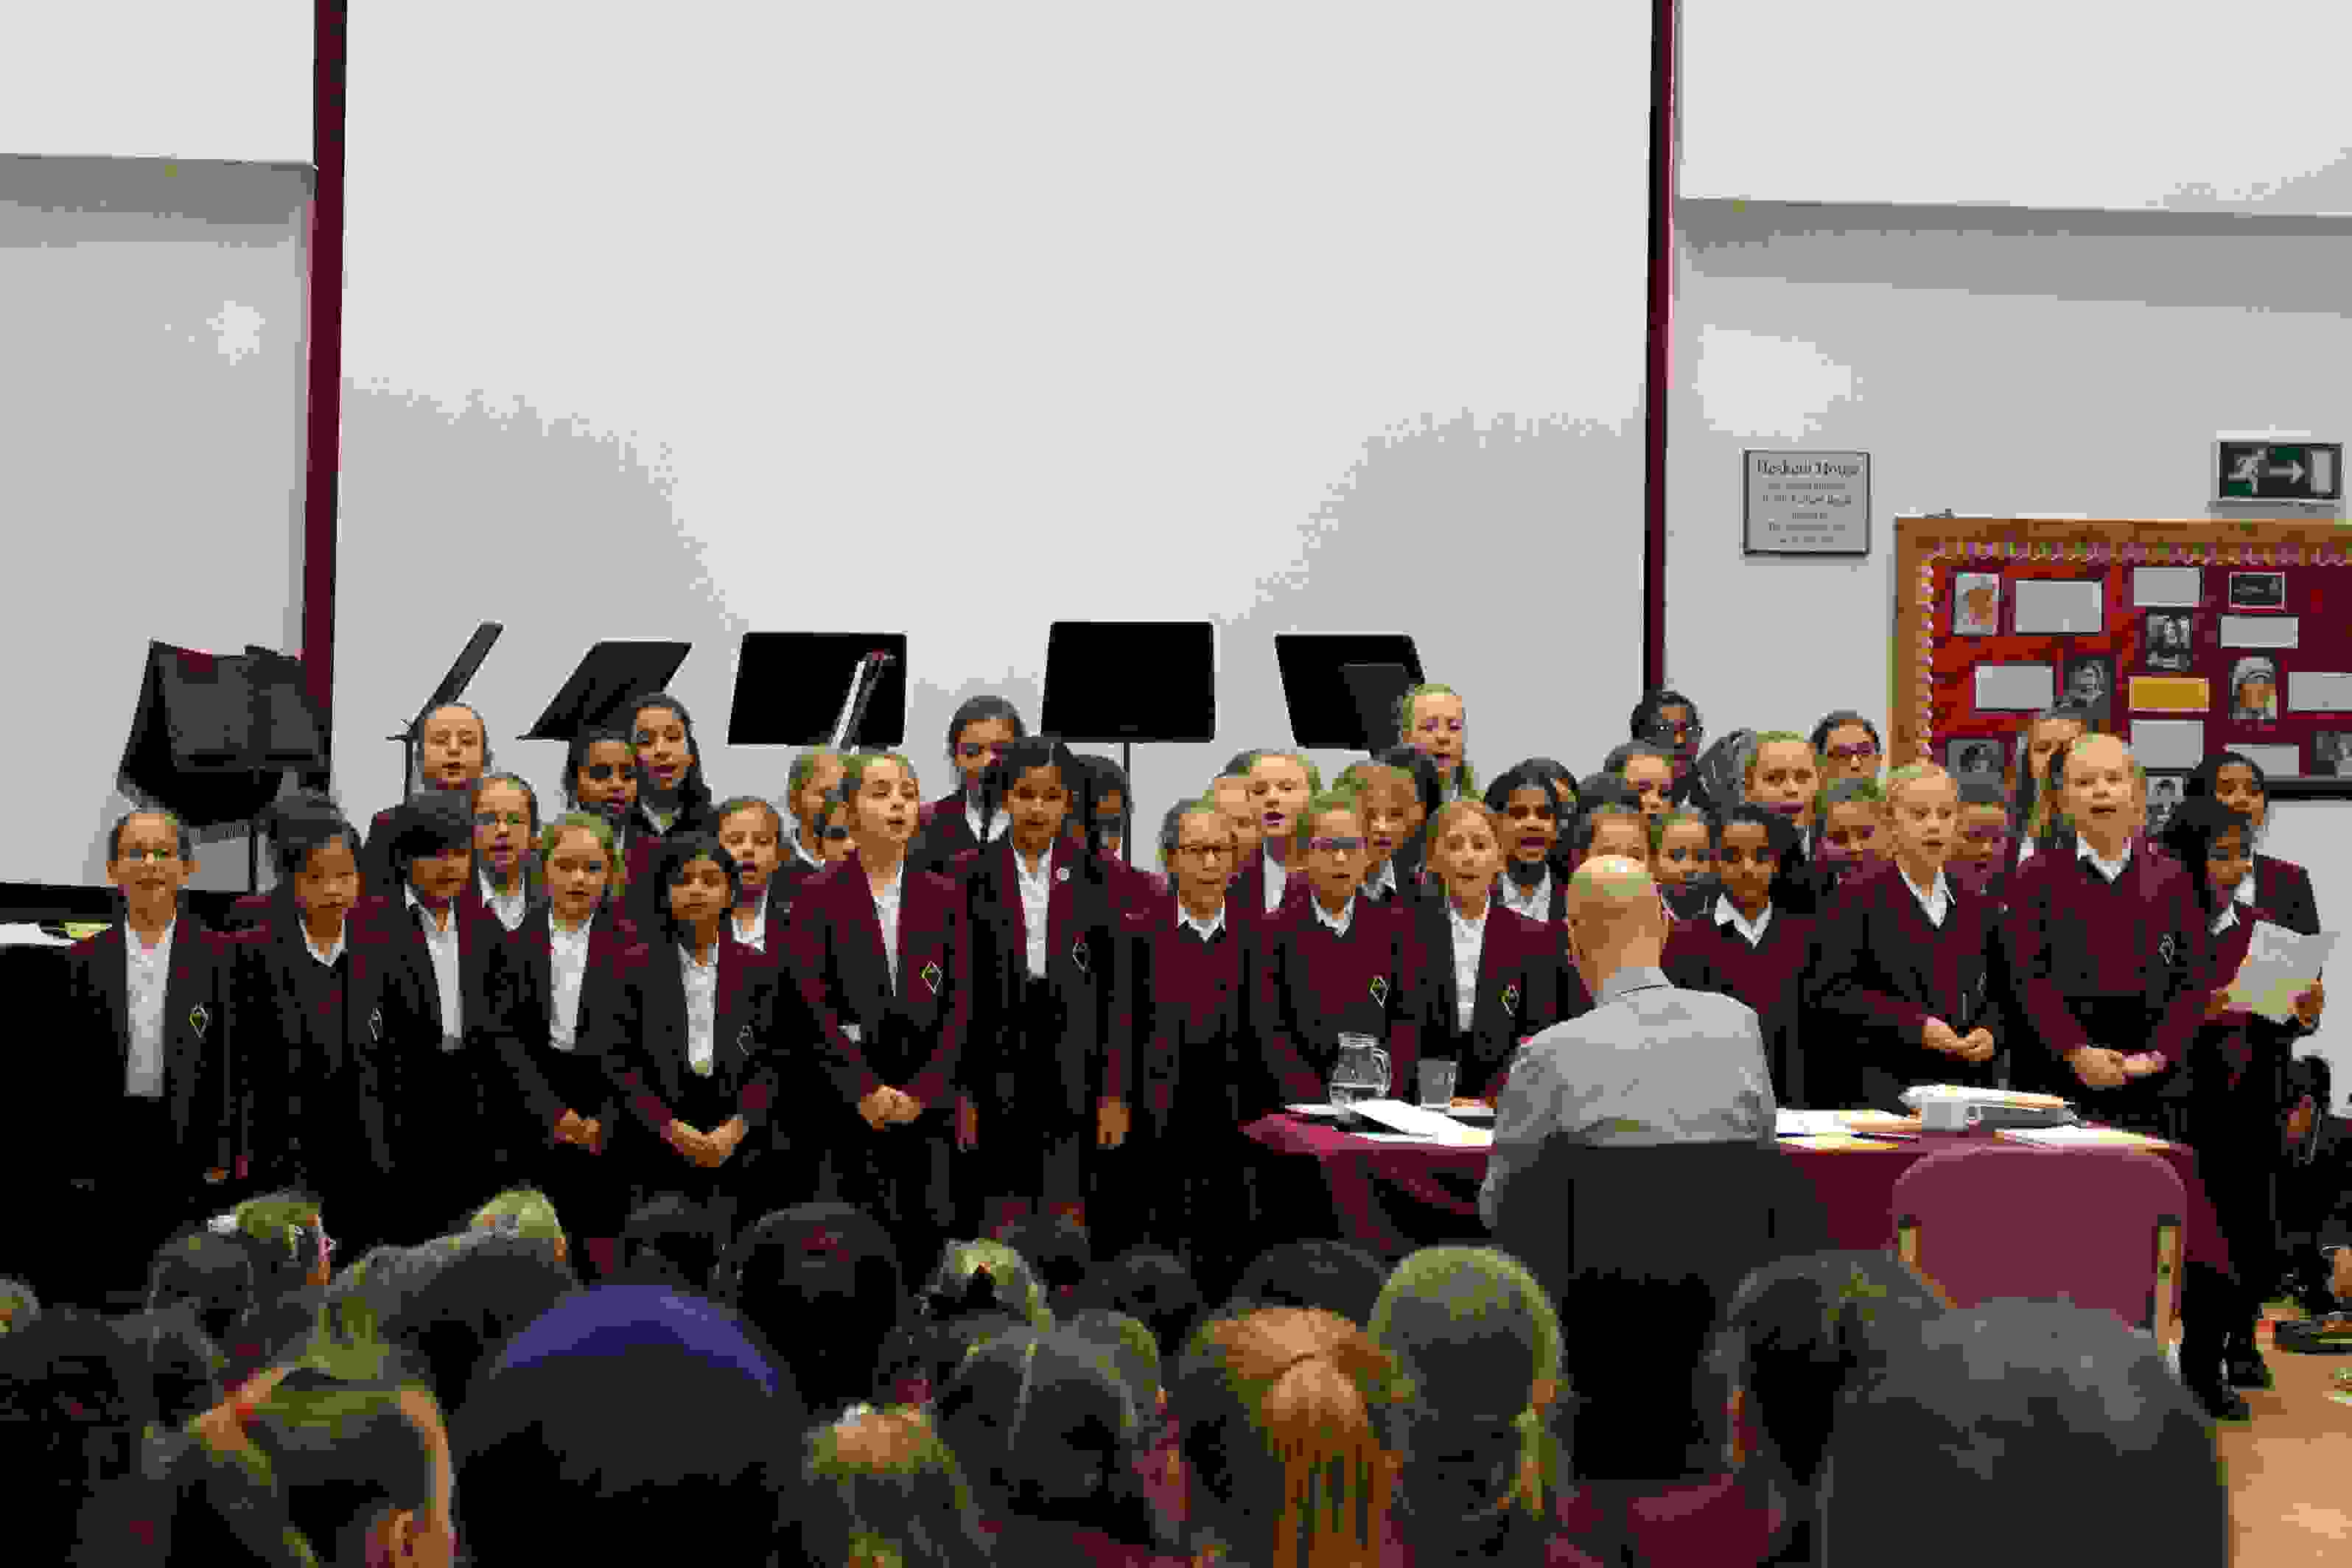 Music Festival choir